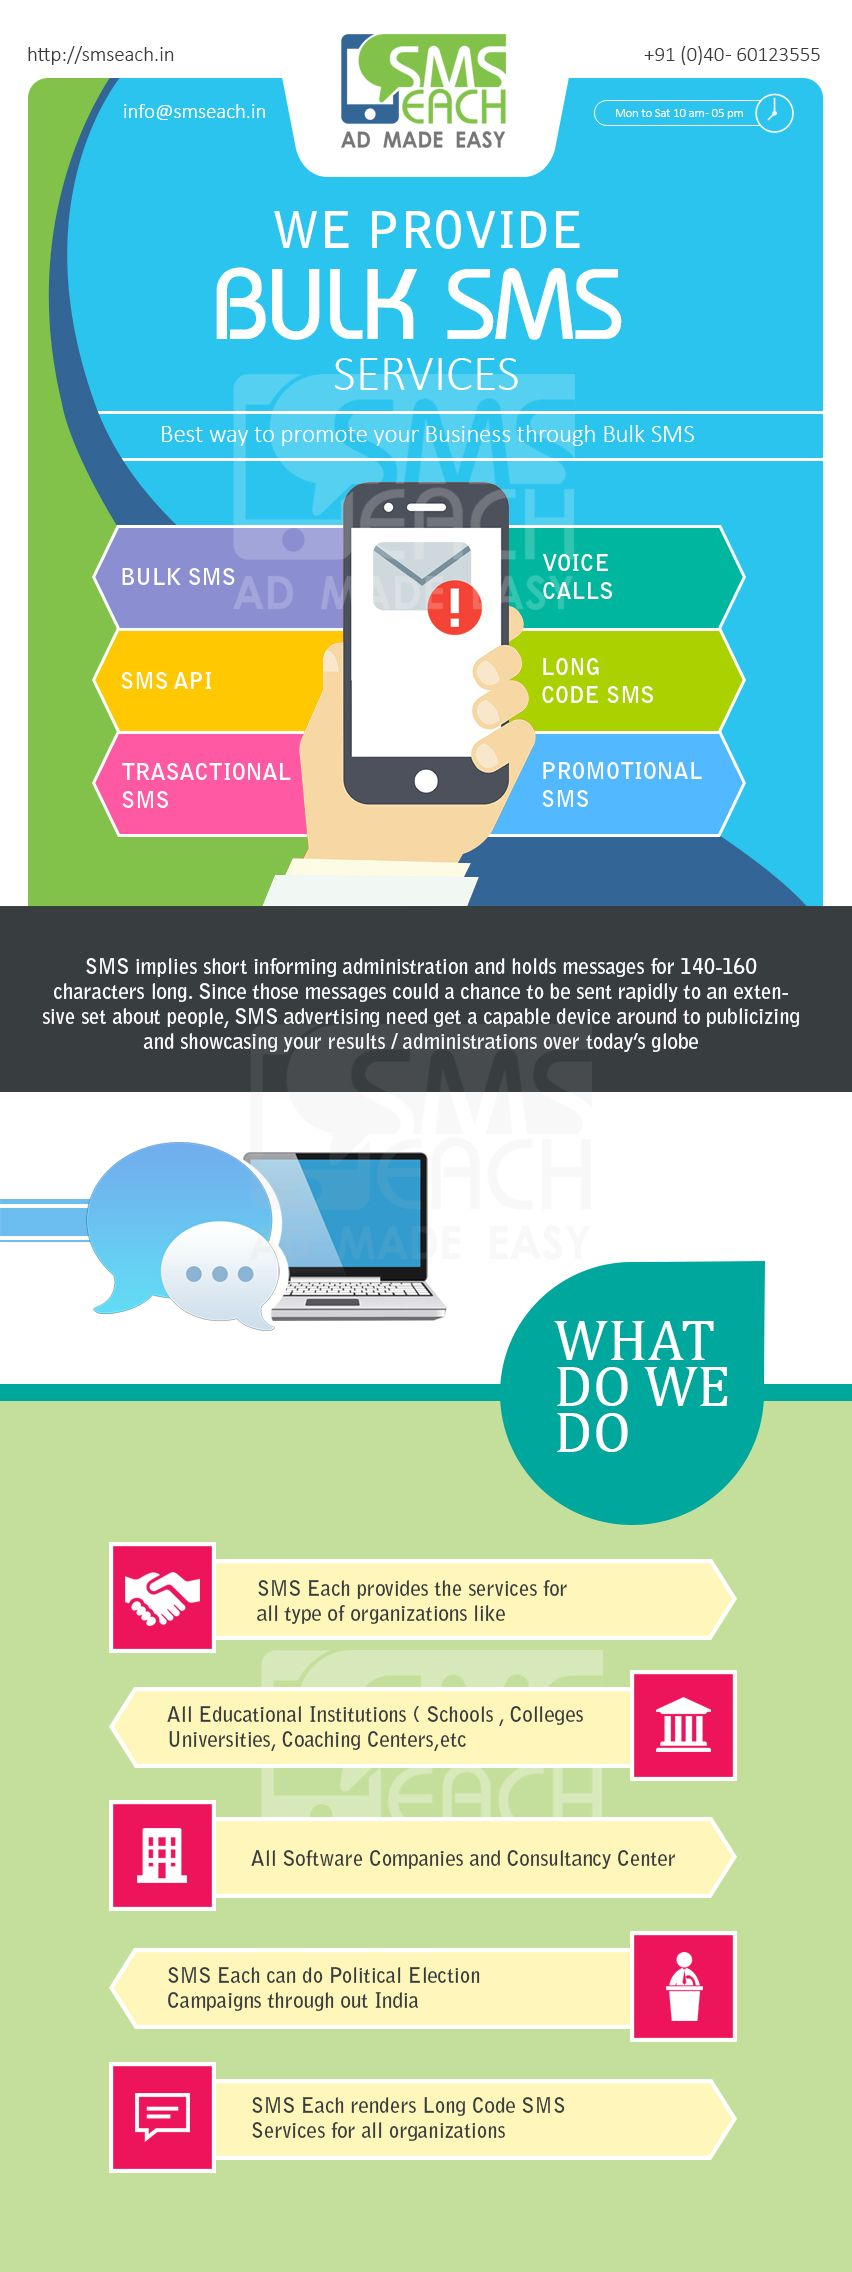 Pin by Smseach Bulk SMS Services on Smseach Infographic